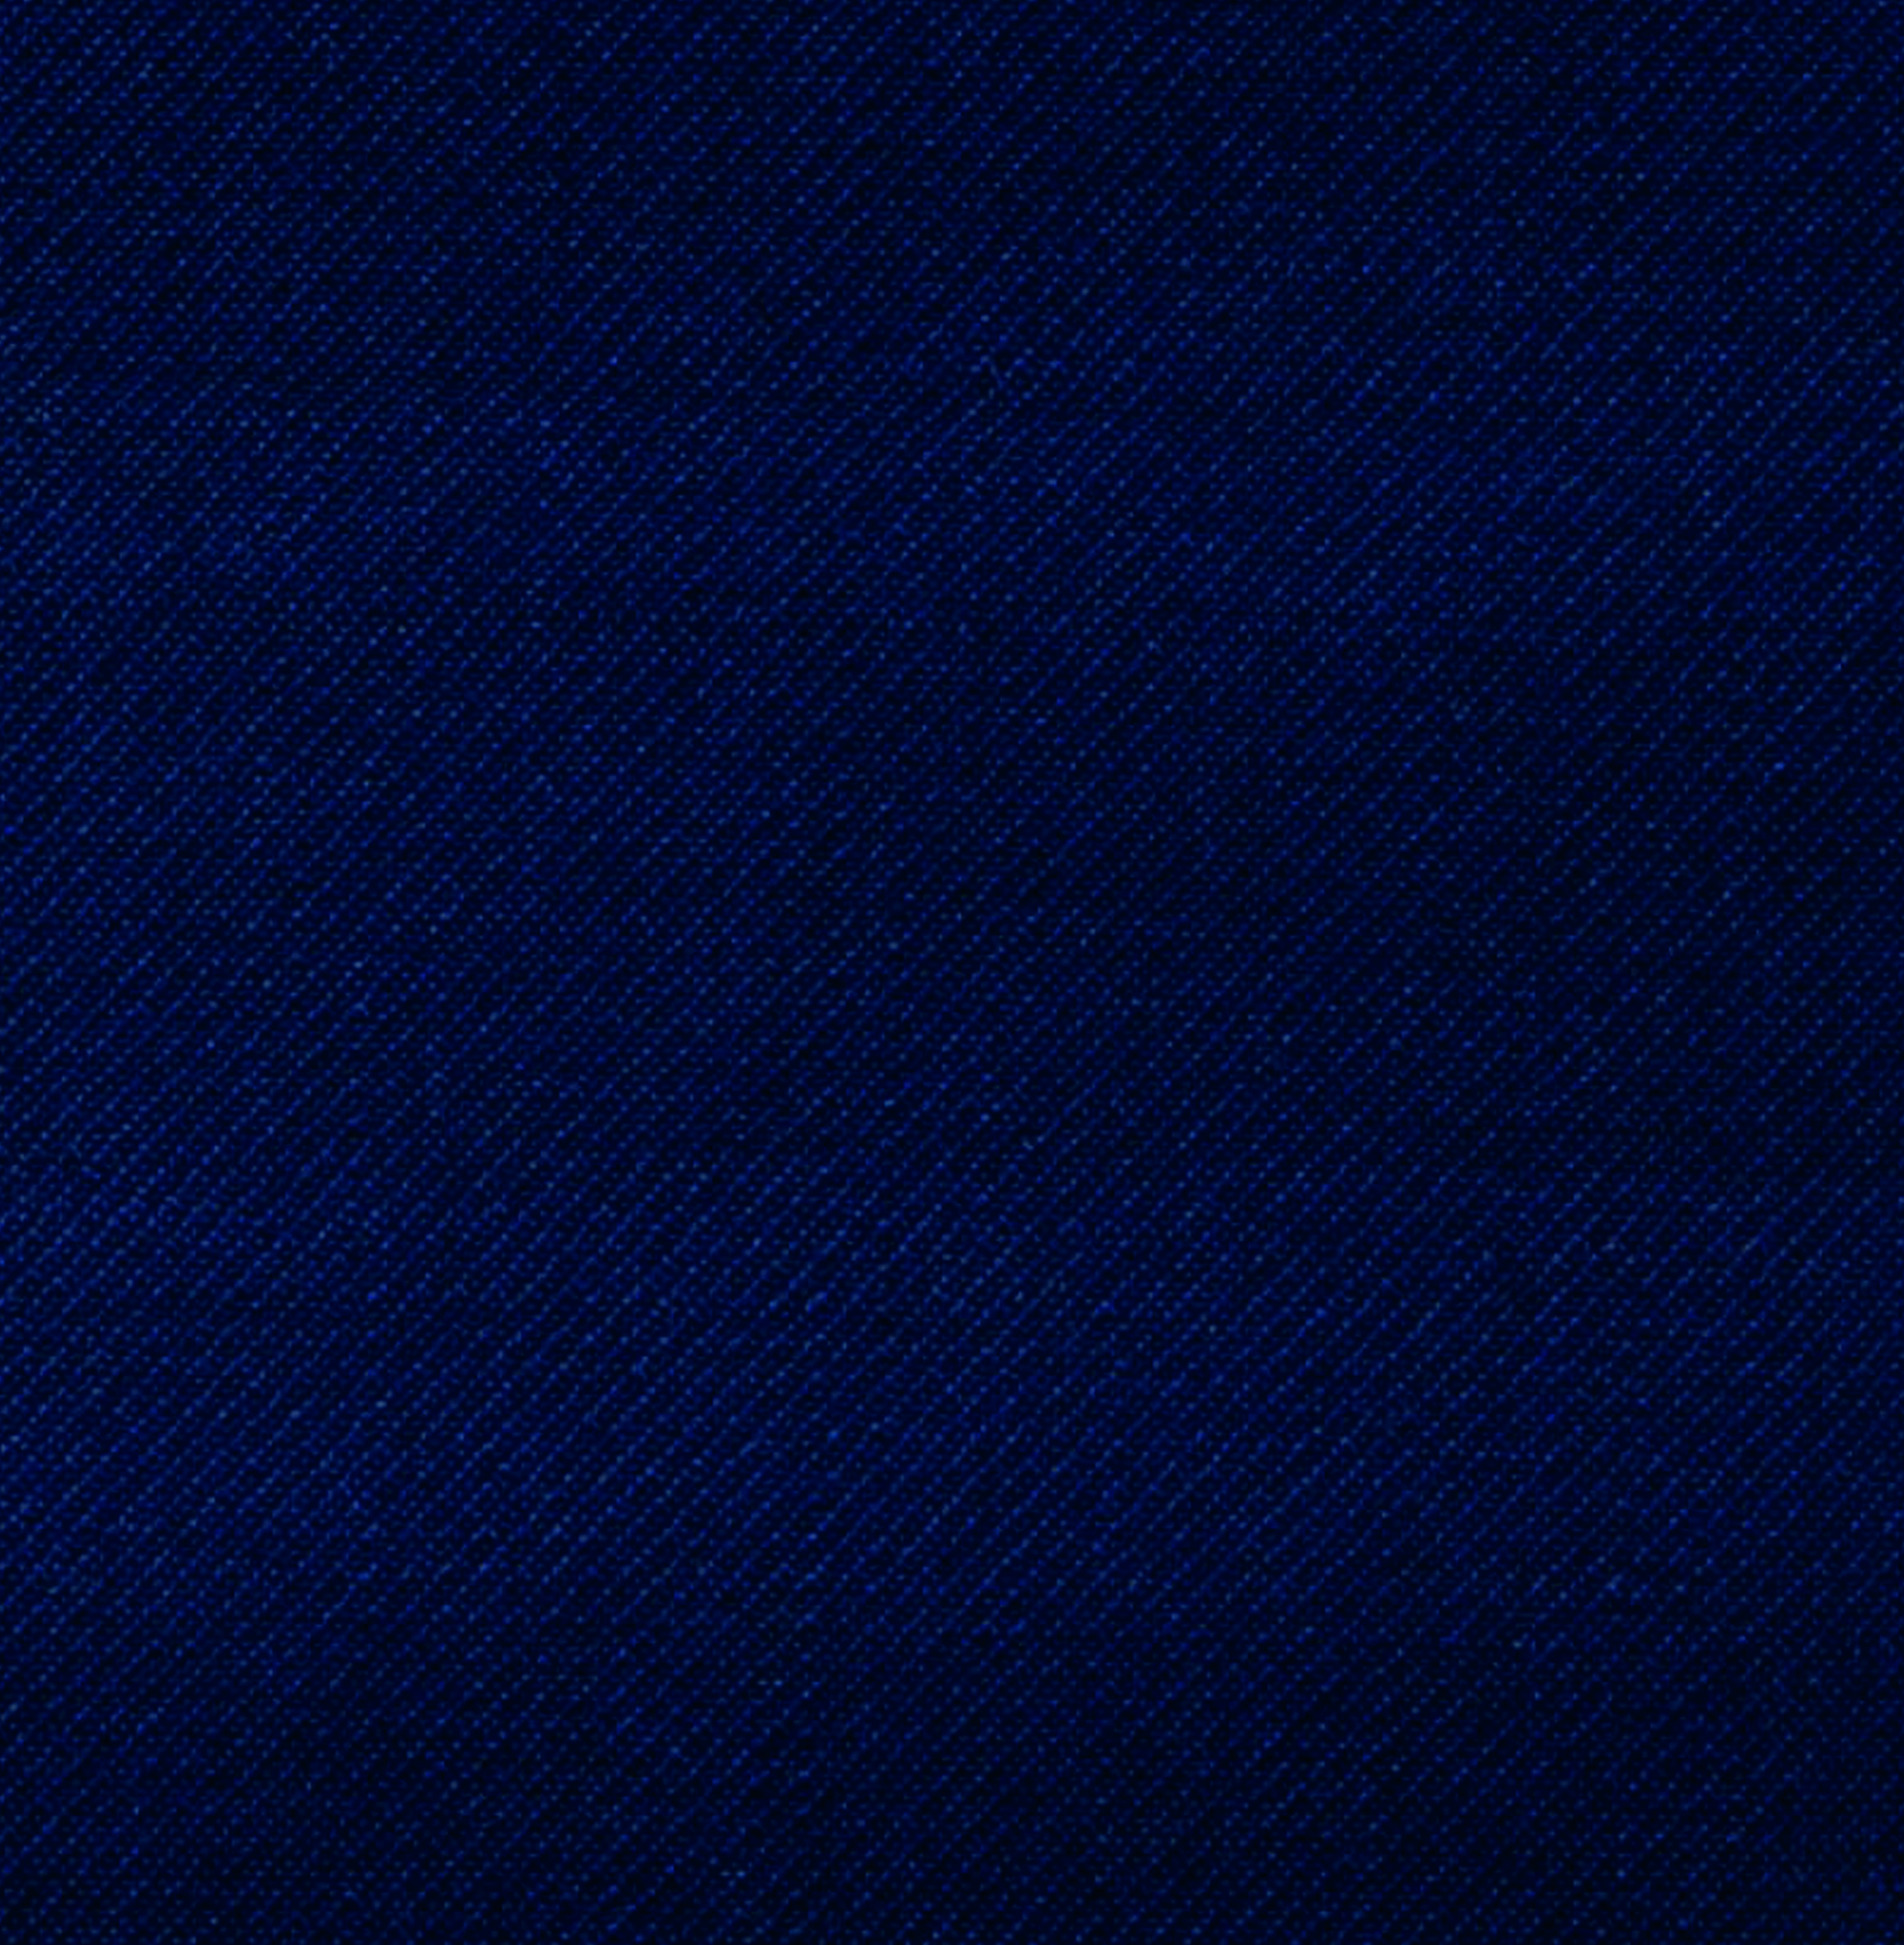 Buy tailor made shirts online - Easy Care Wool Mix - Navy No lining